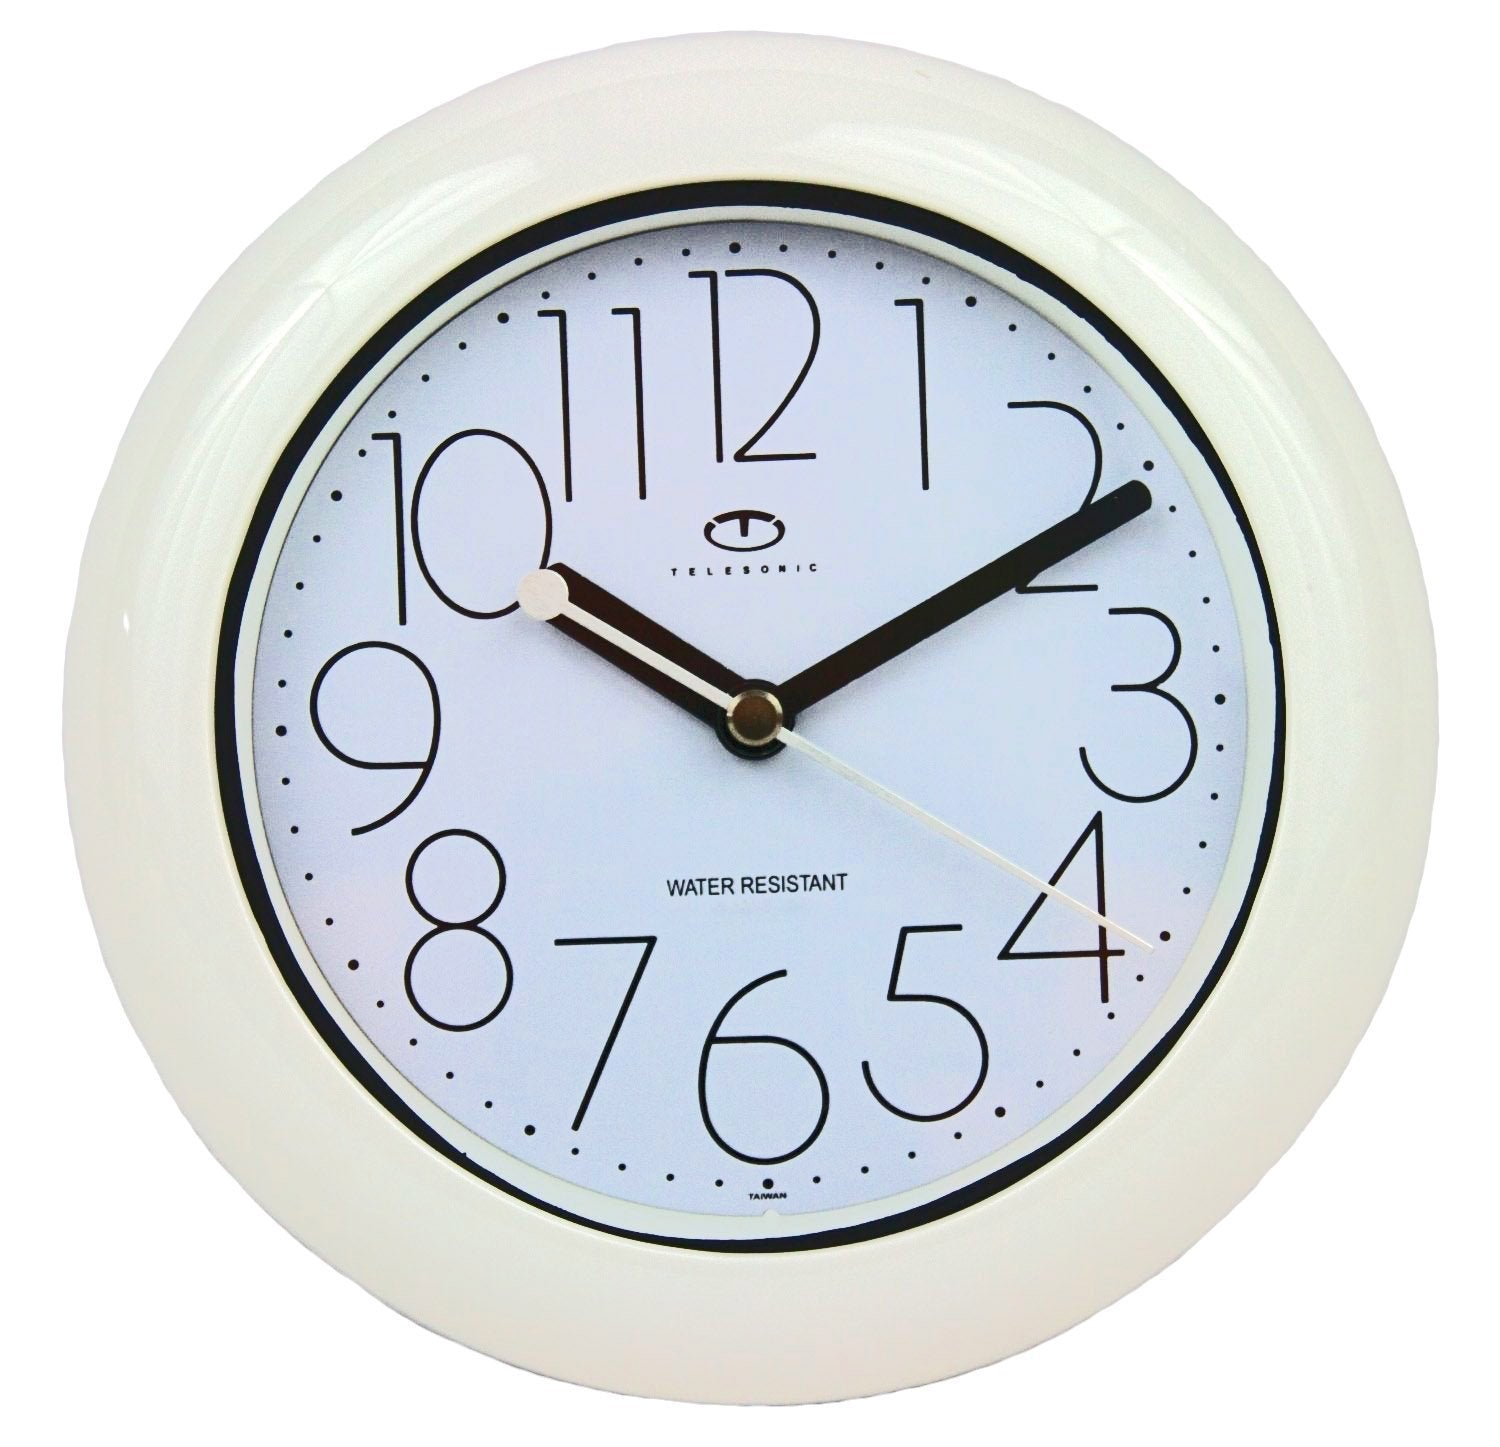 675 Water Resistant Wall Clock With Quiet Sweep Movement